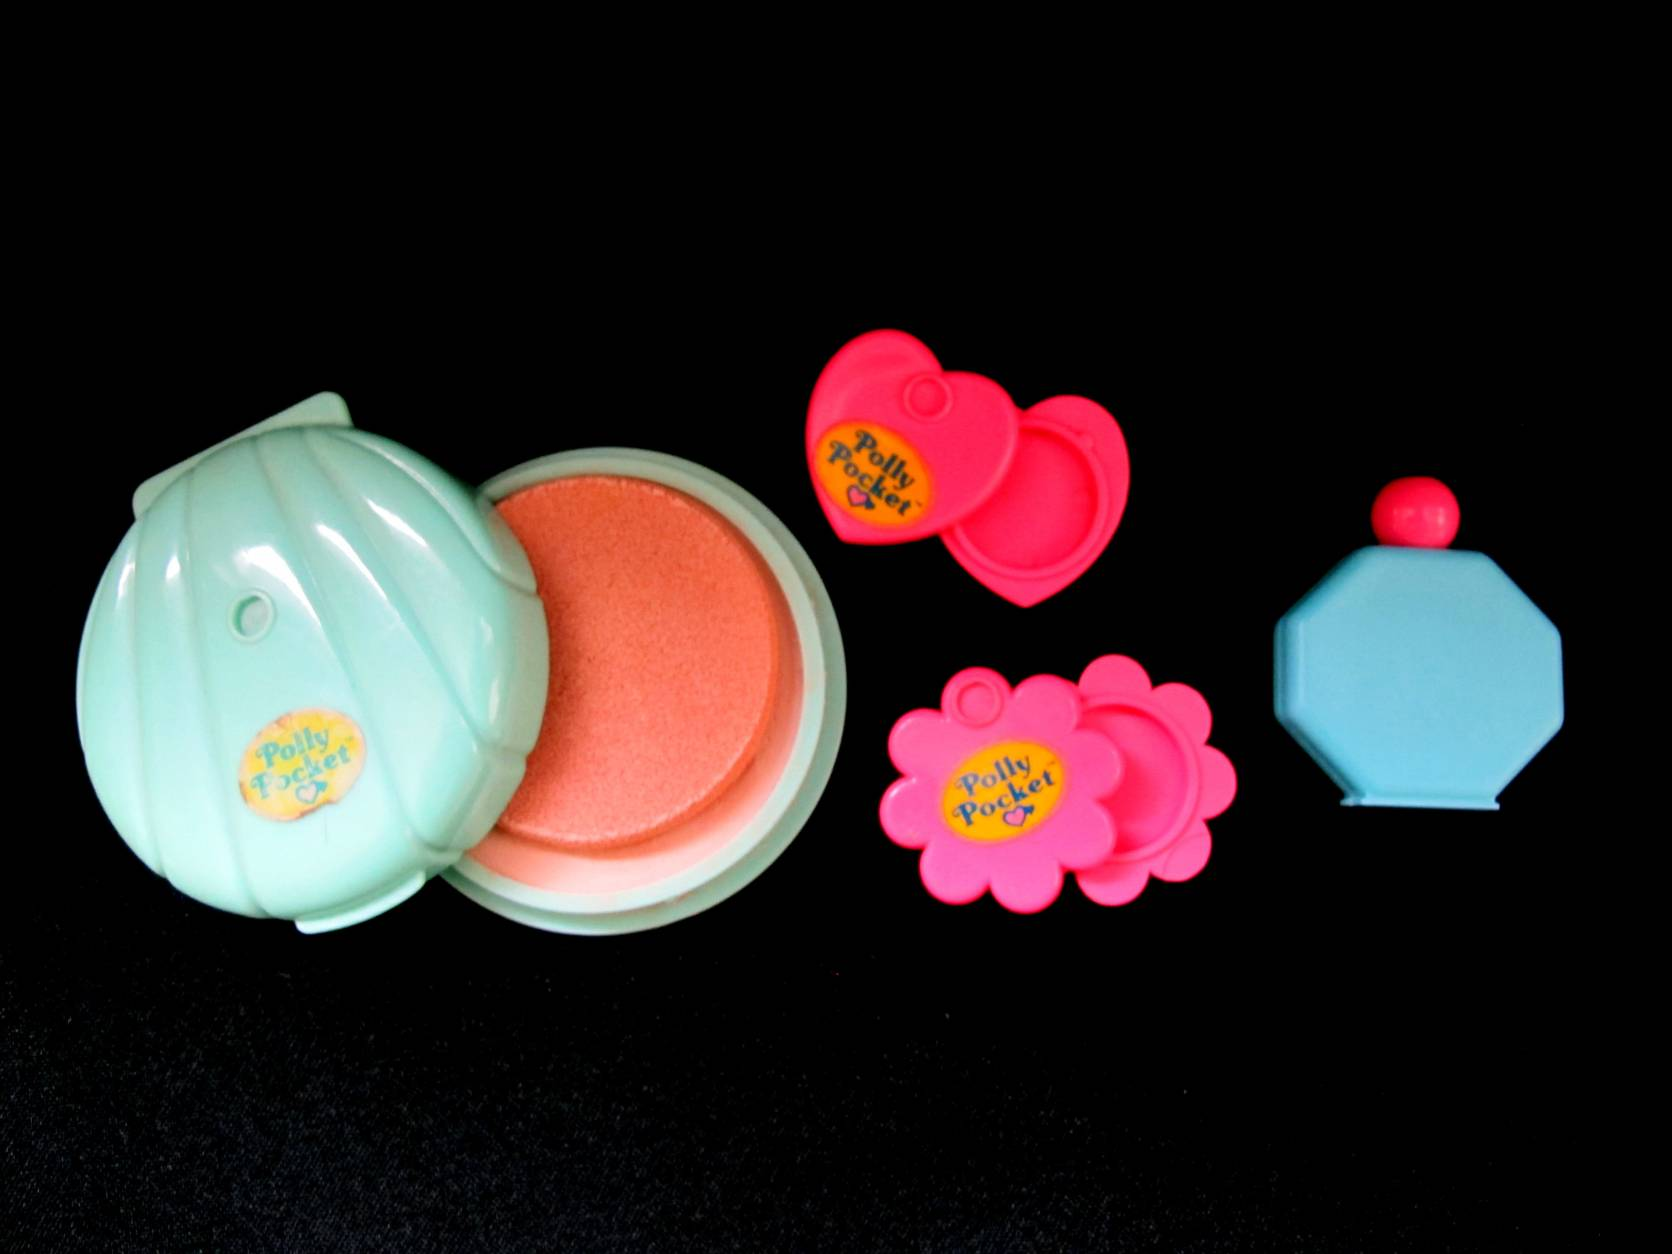 1991 Pull Out Playhouse make up en popjes (2)